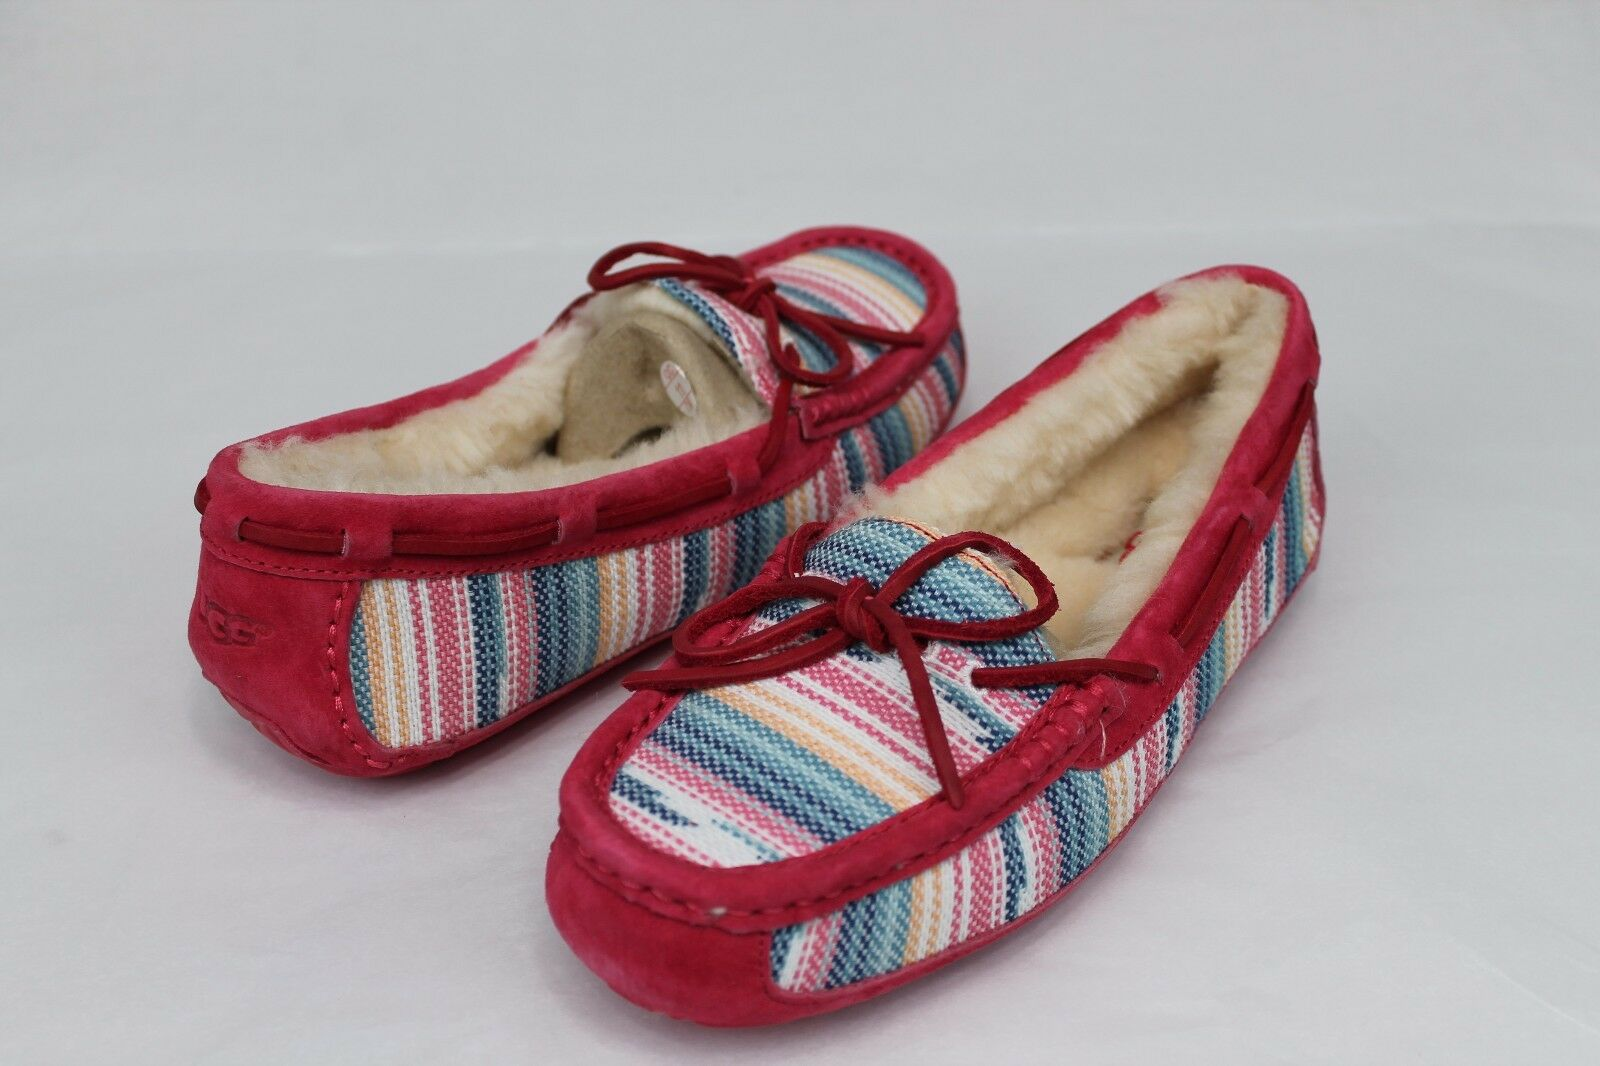 5c678f89b80 Awesome UGG Australia Size 7 US Symona Serape Striped Slippers in Pink